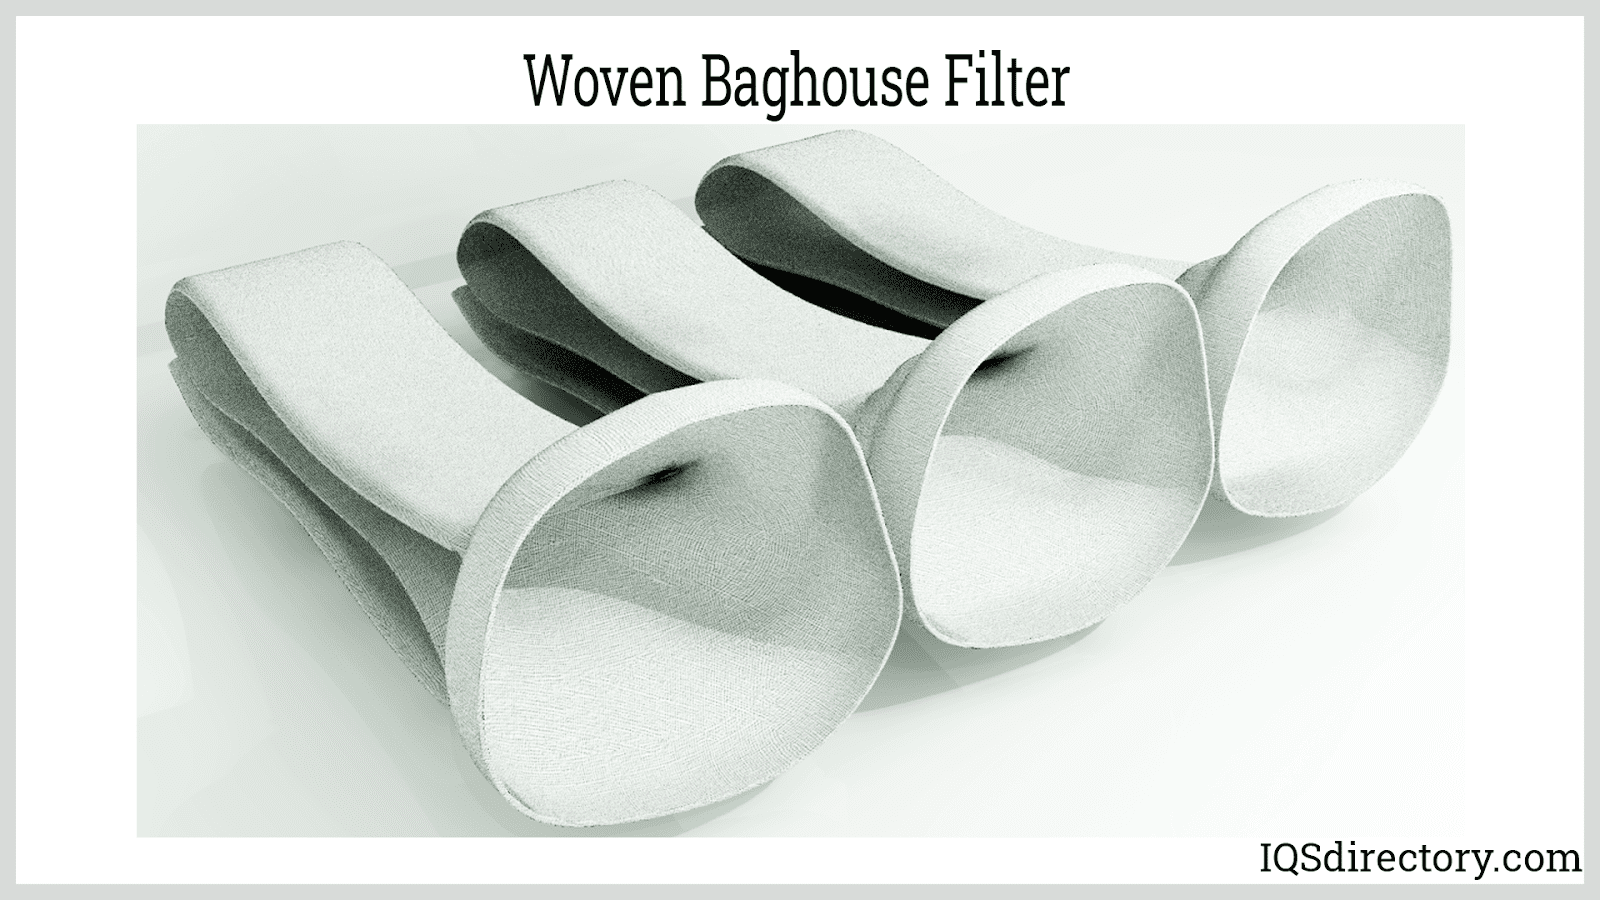 Woven Baghouse Filter